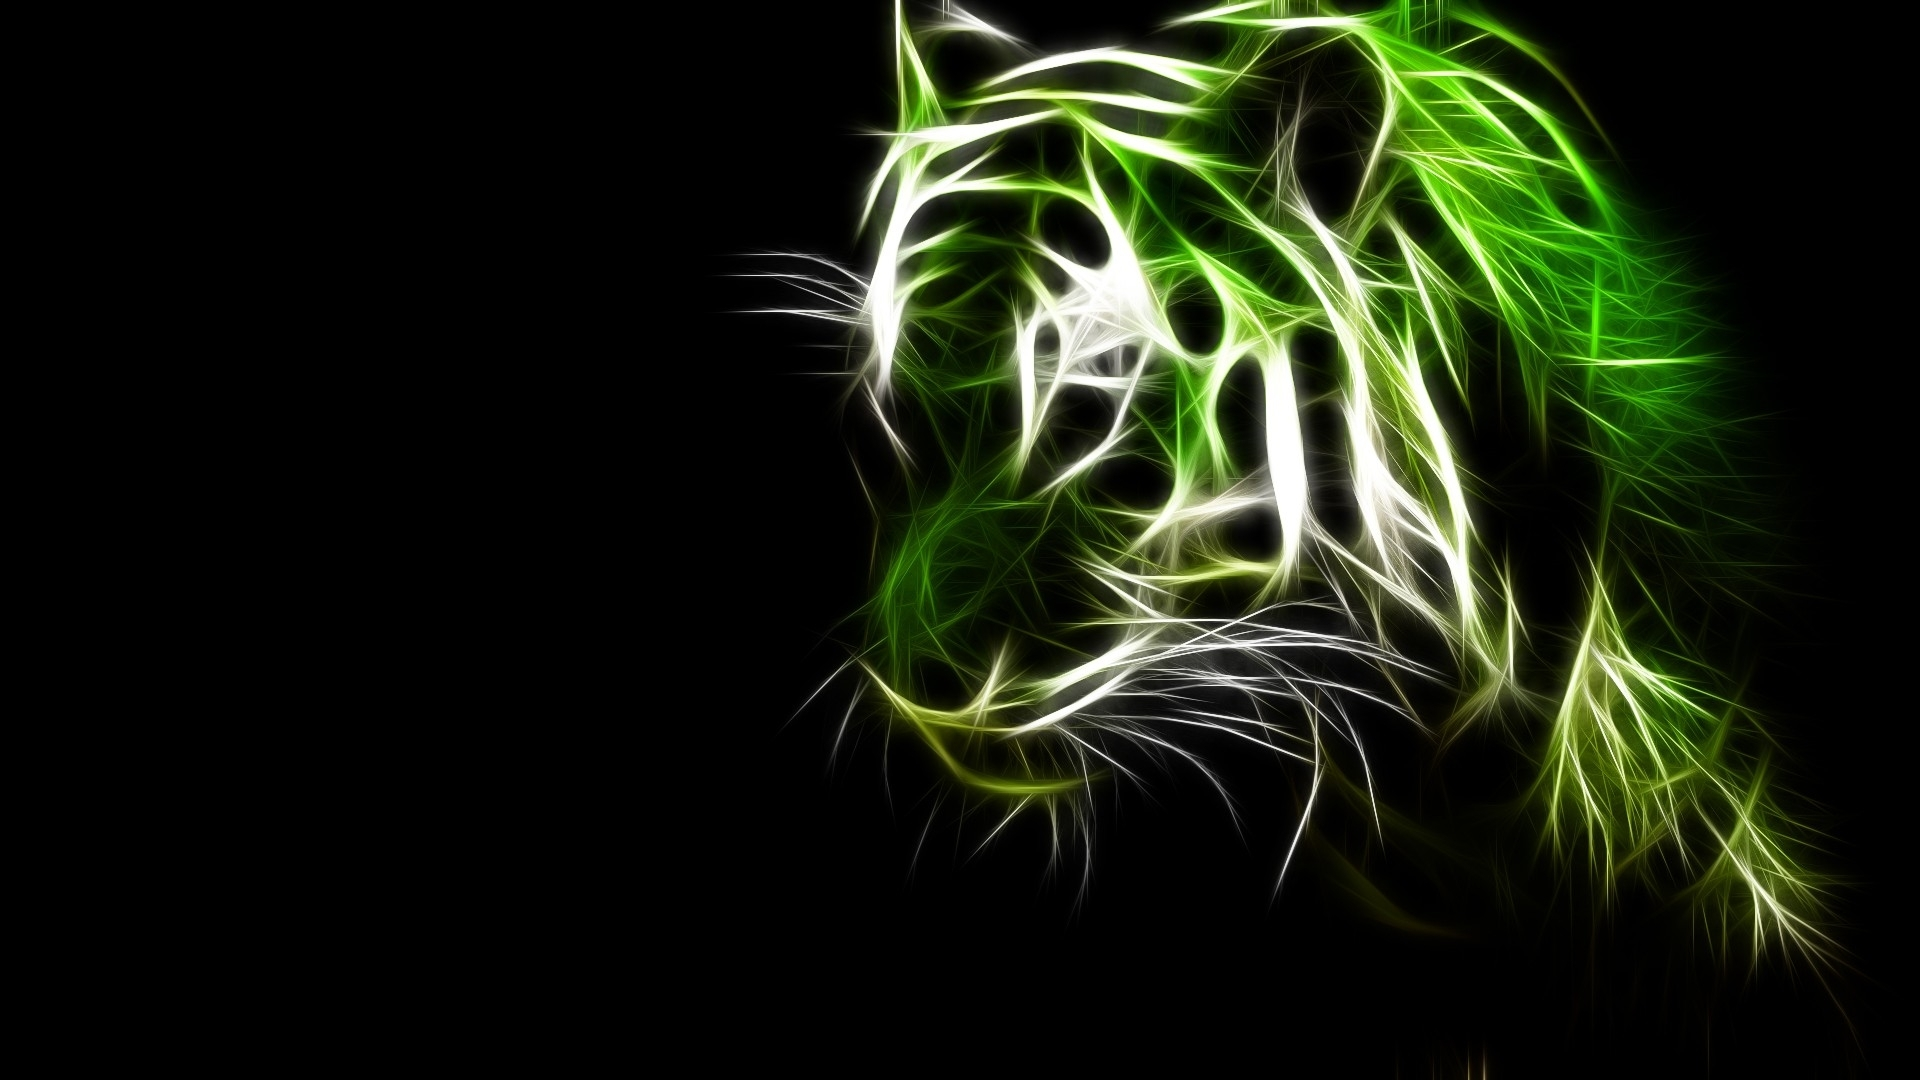 Black And Green Art Wallpaper 7 High Resolution Wallpaper ...Black And Green Backgrounds